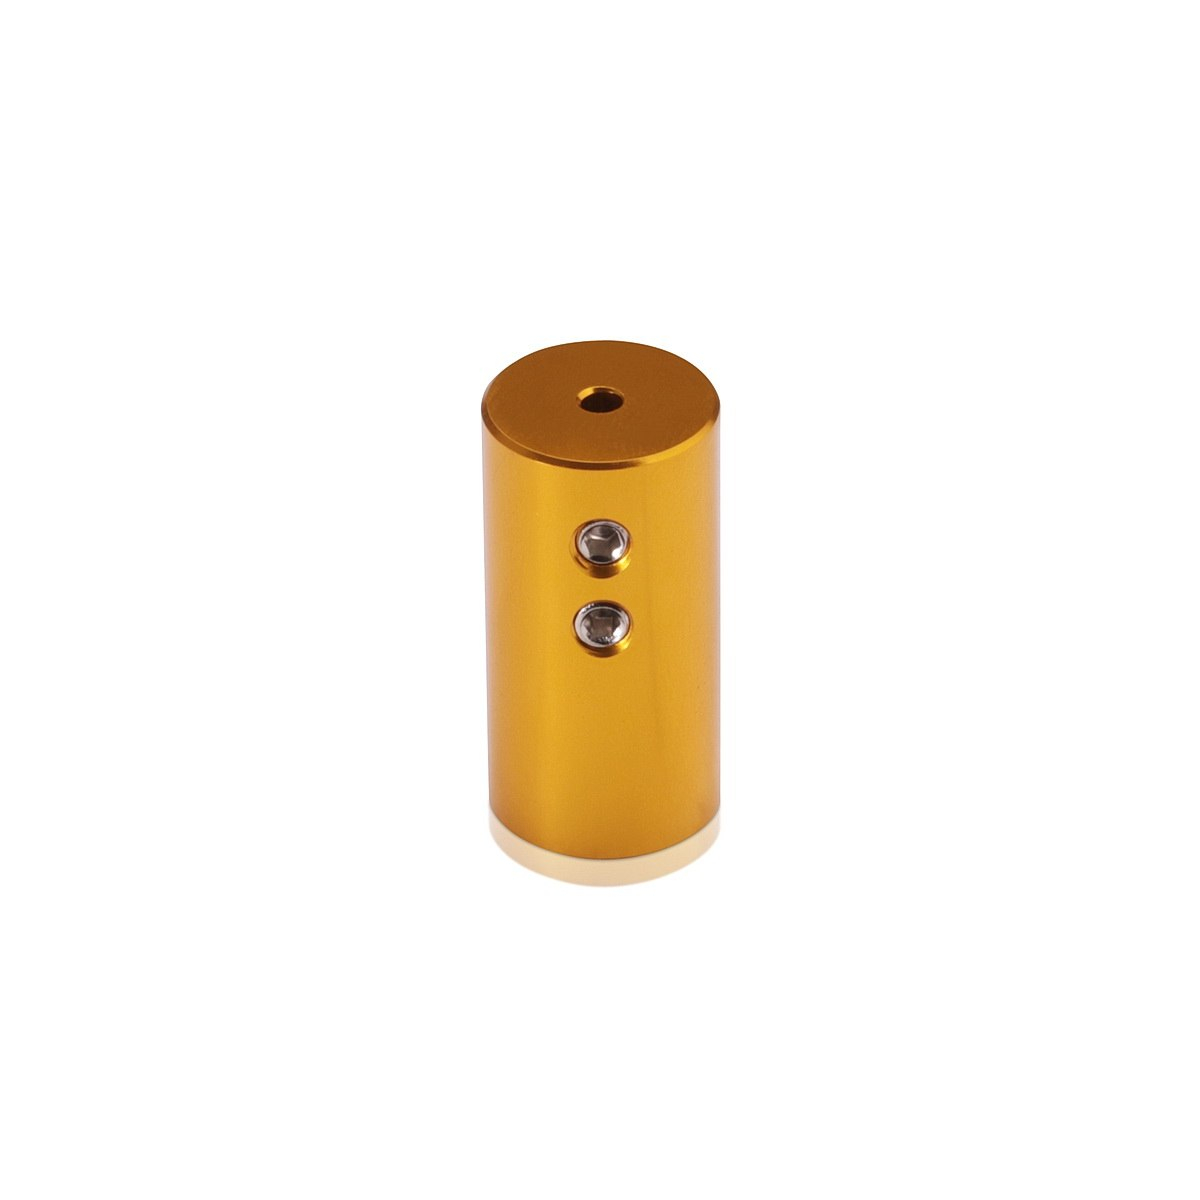 Aluminum Ceiling Mounted Material Holder, Gold Anodized Finish